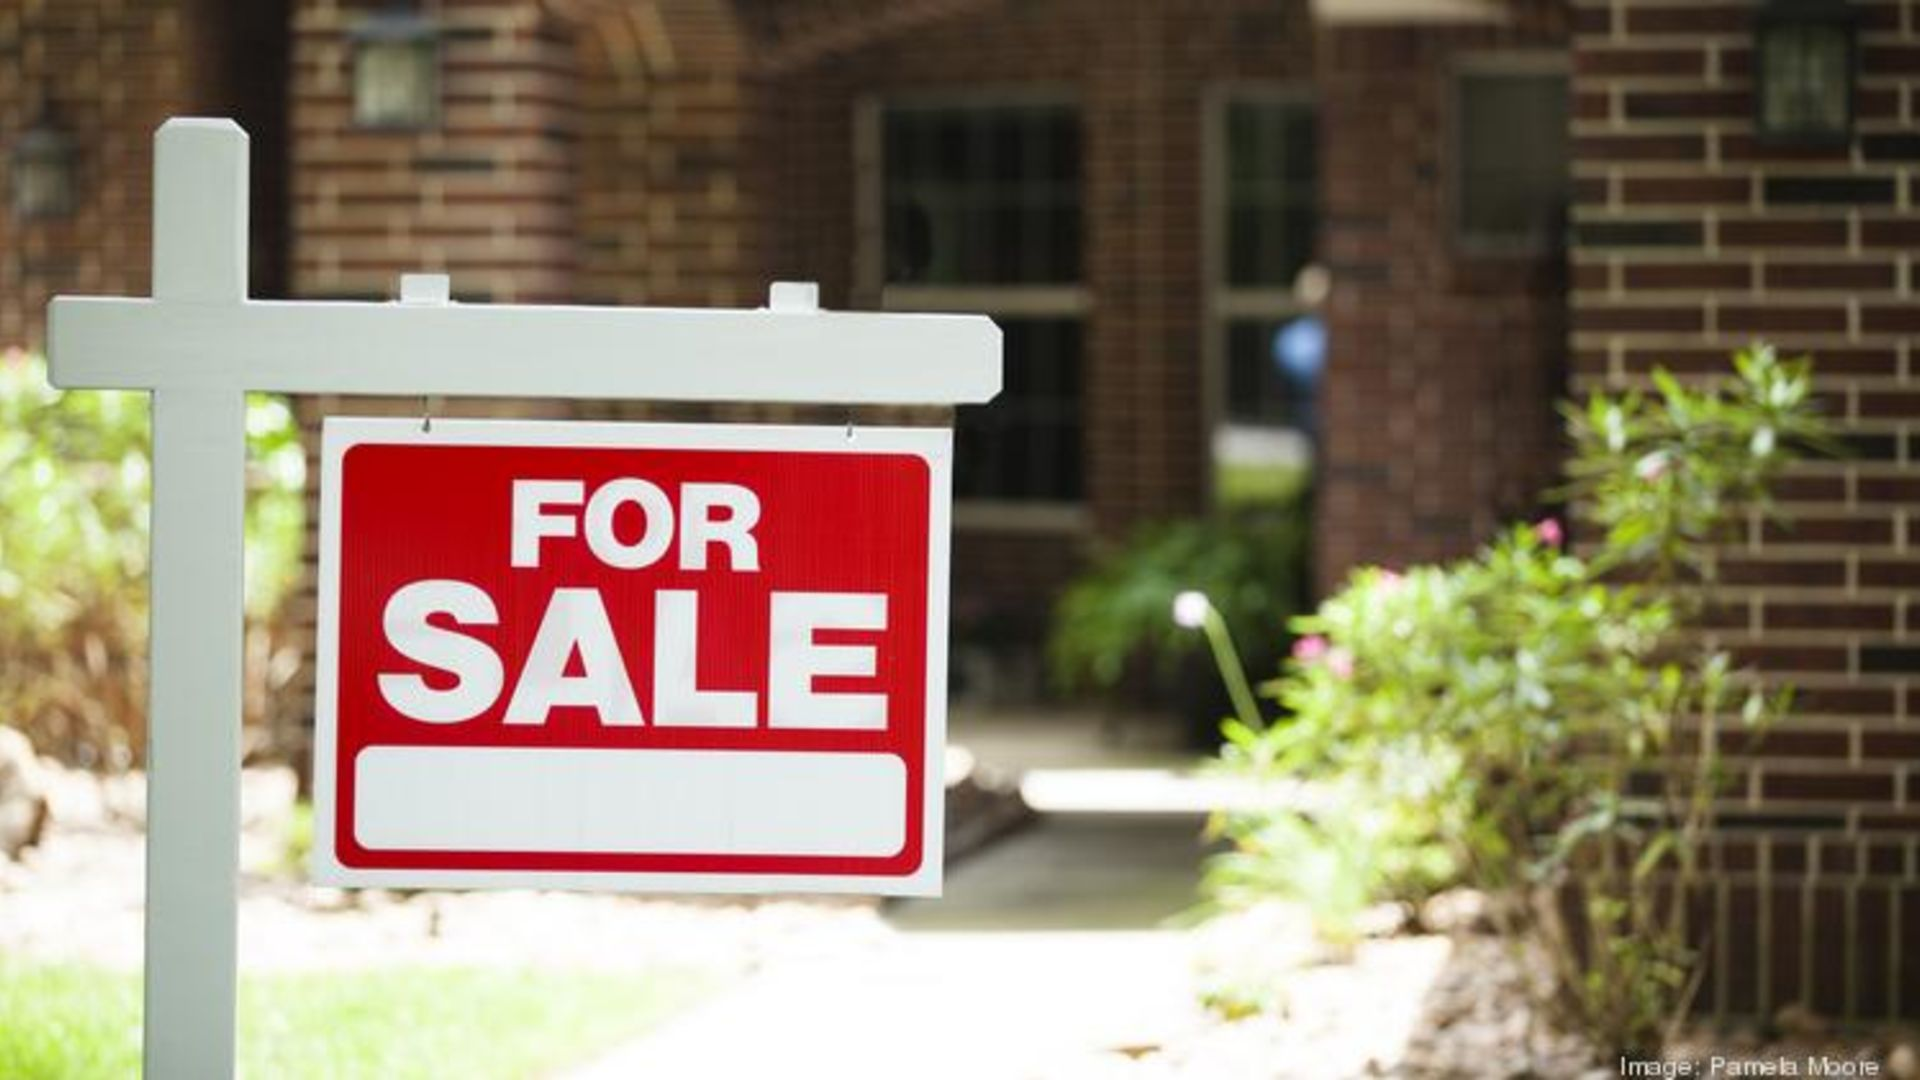 Atlanta housing market sees drop in demand, increase in prices